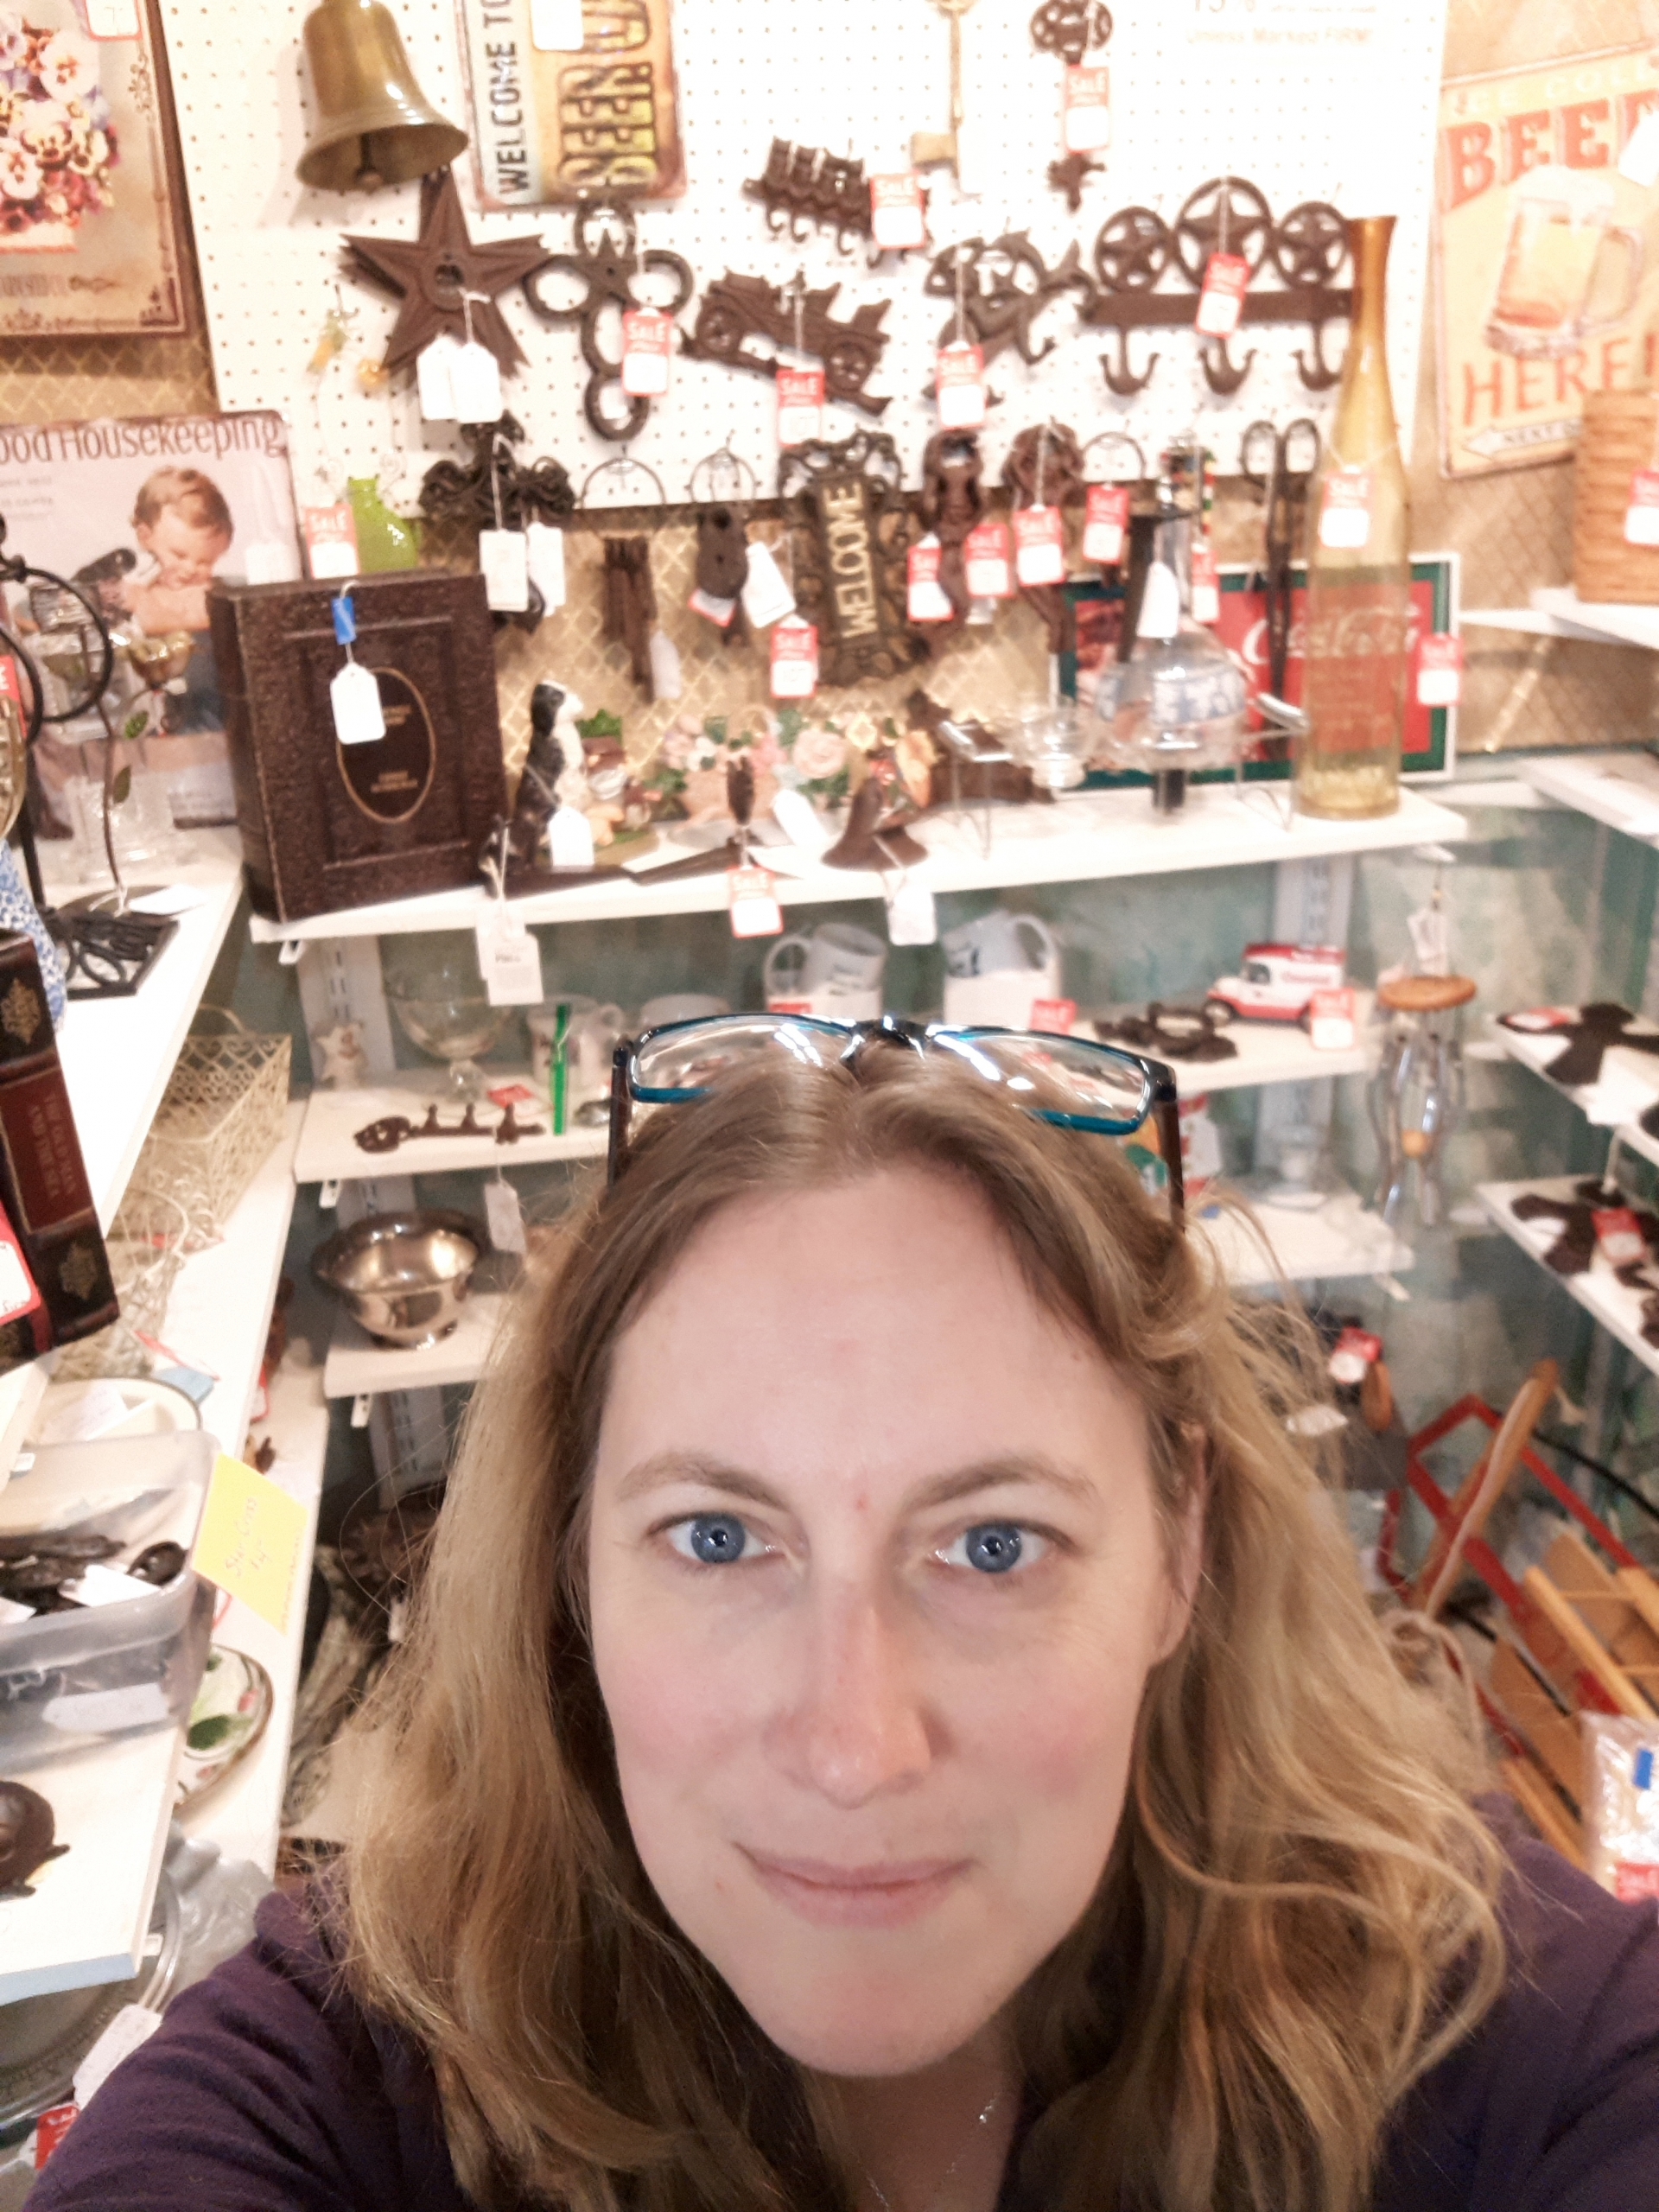 Booth 124 - Scranberry Coop - Vintage Store - Antiques, Collectibles, & More